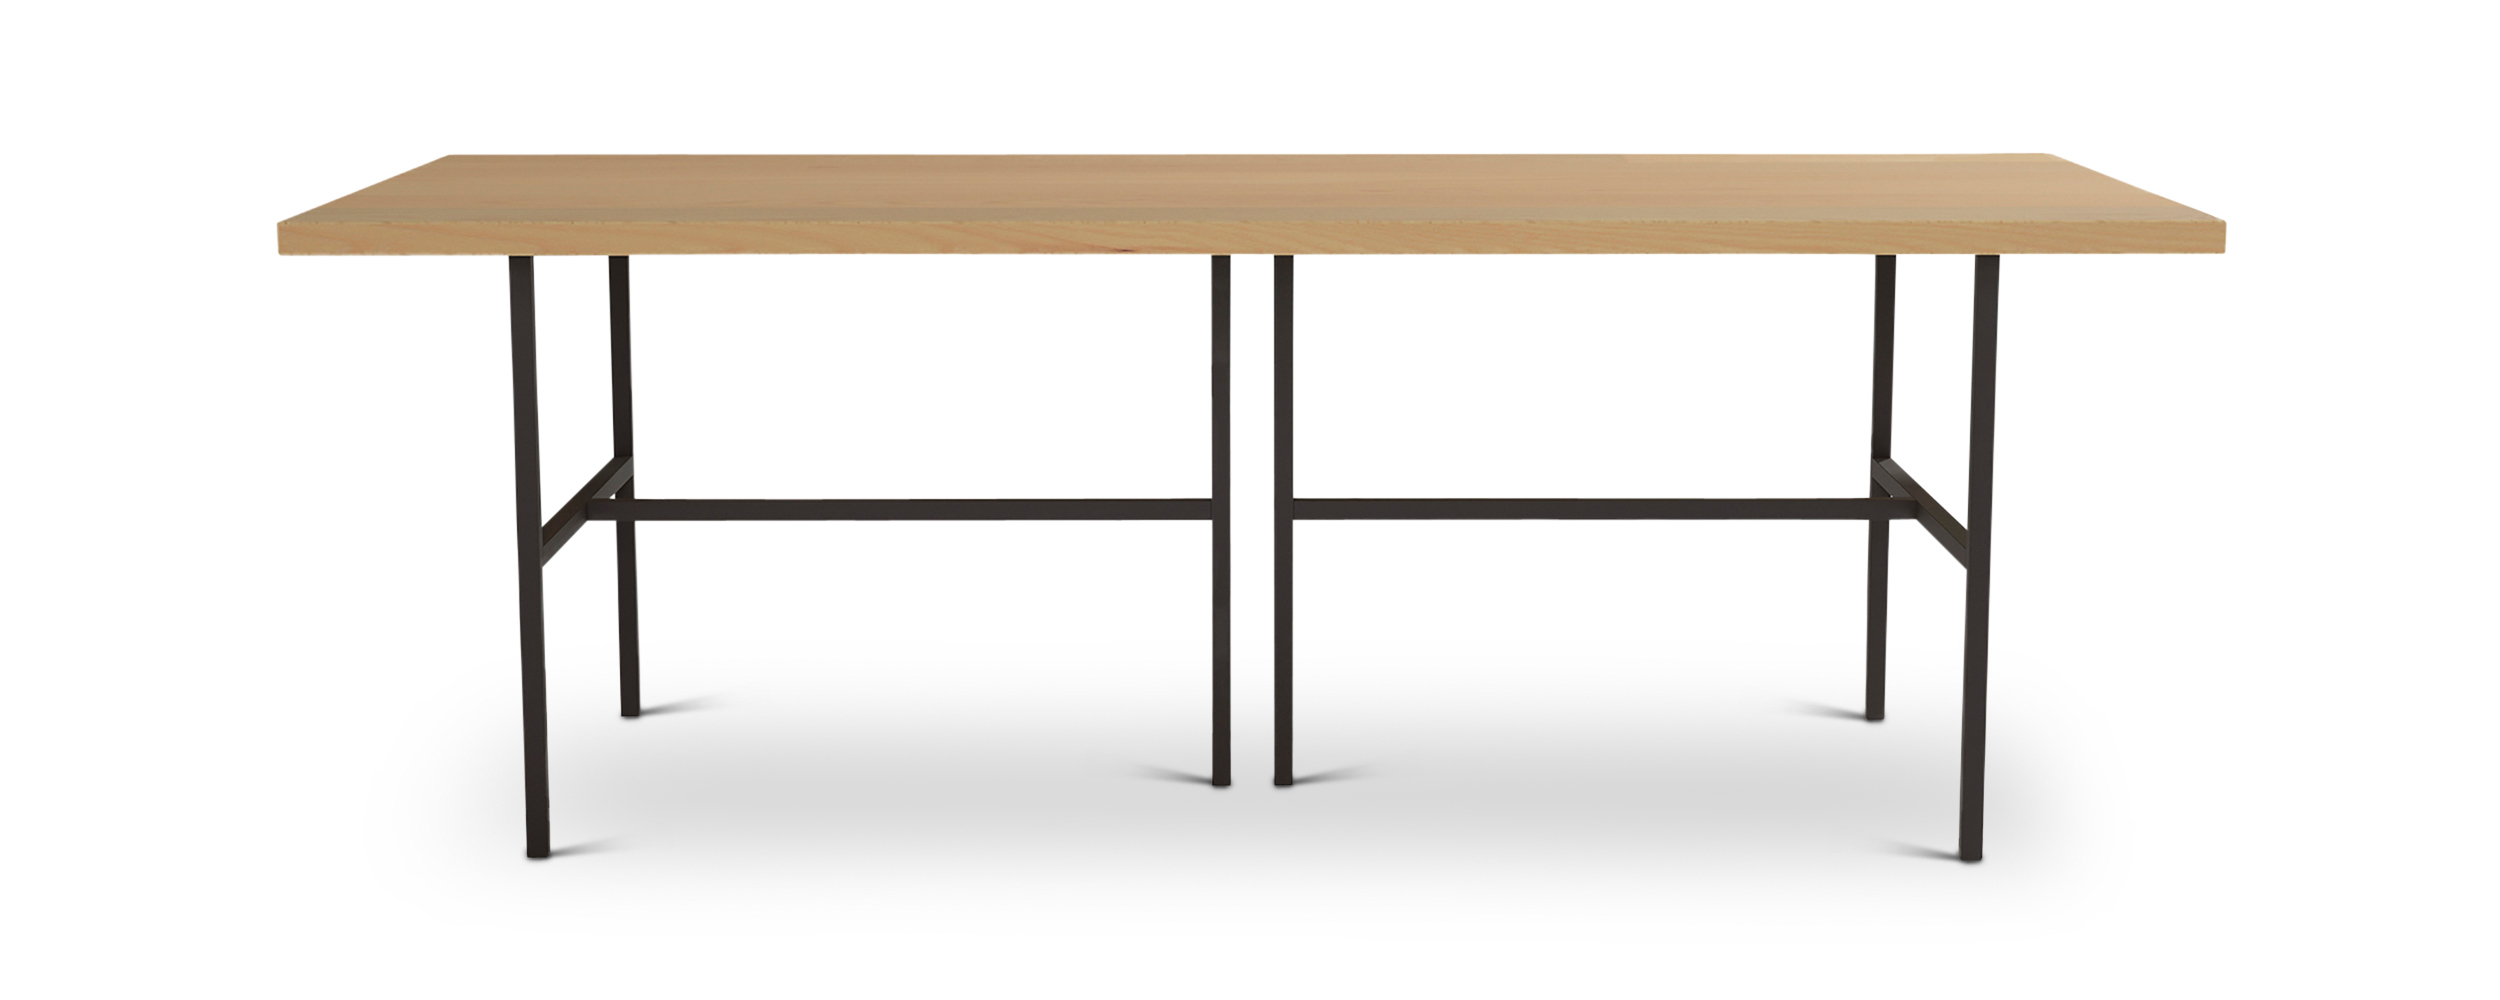 Series 828 black metal and wood table